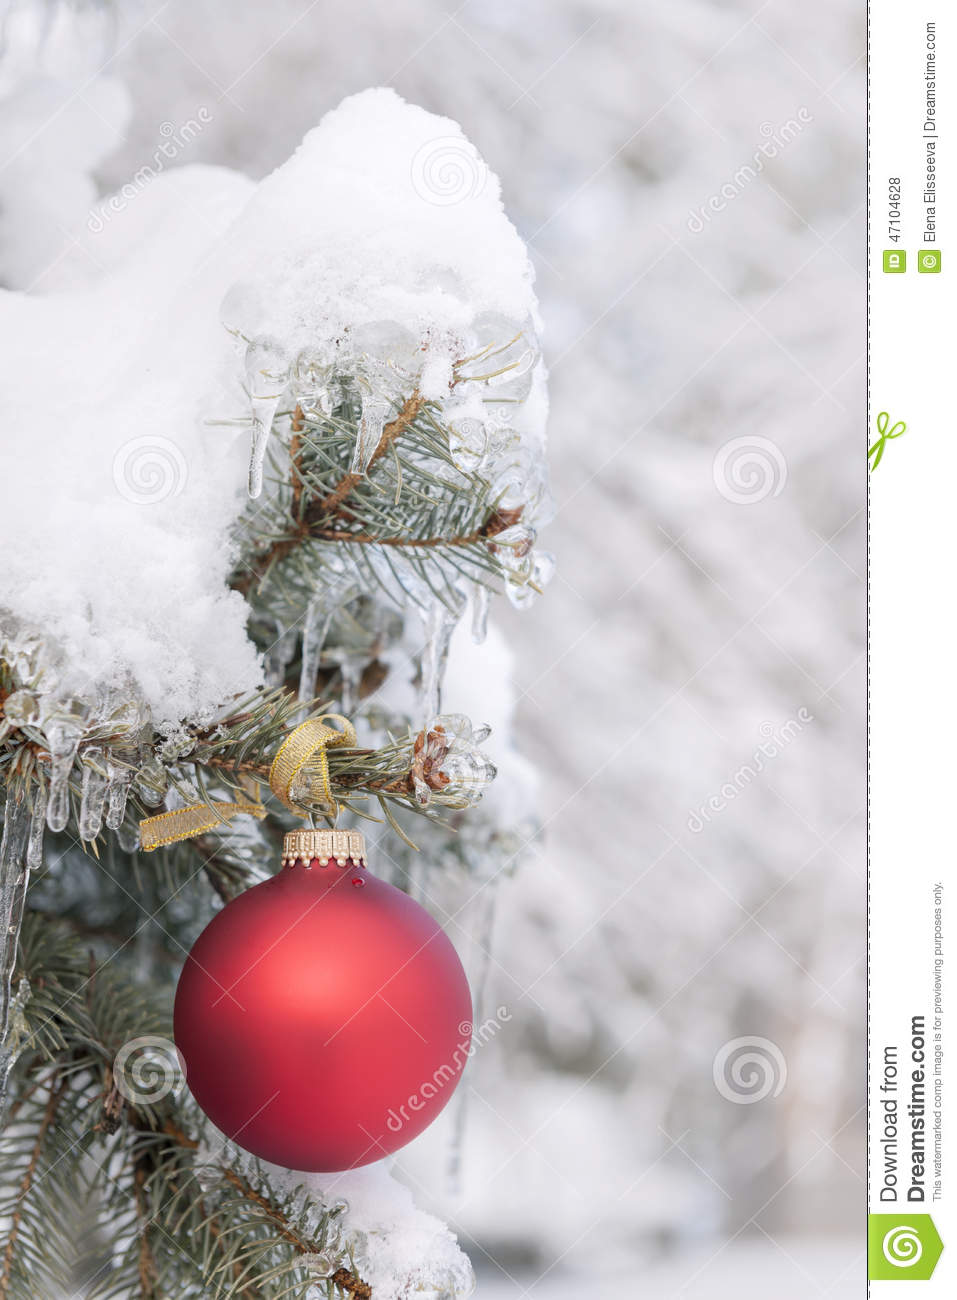 Red christmas ornament on snowy tree stock photo image for Outside hanging ornaments